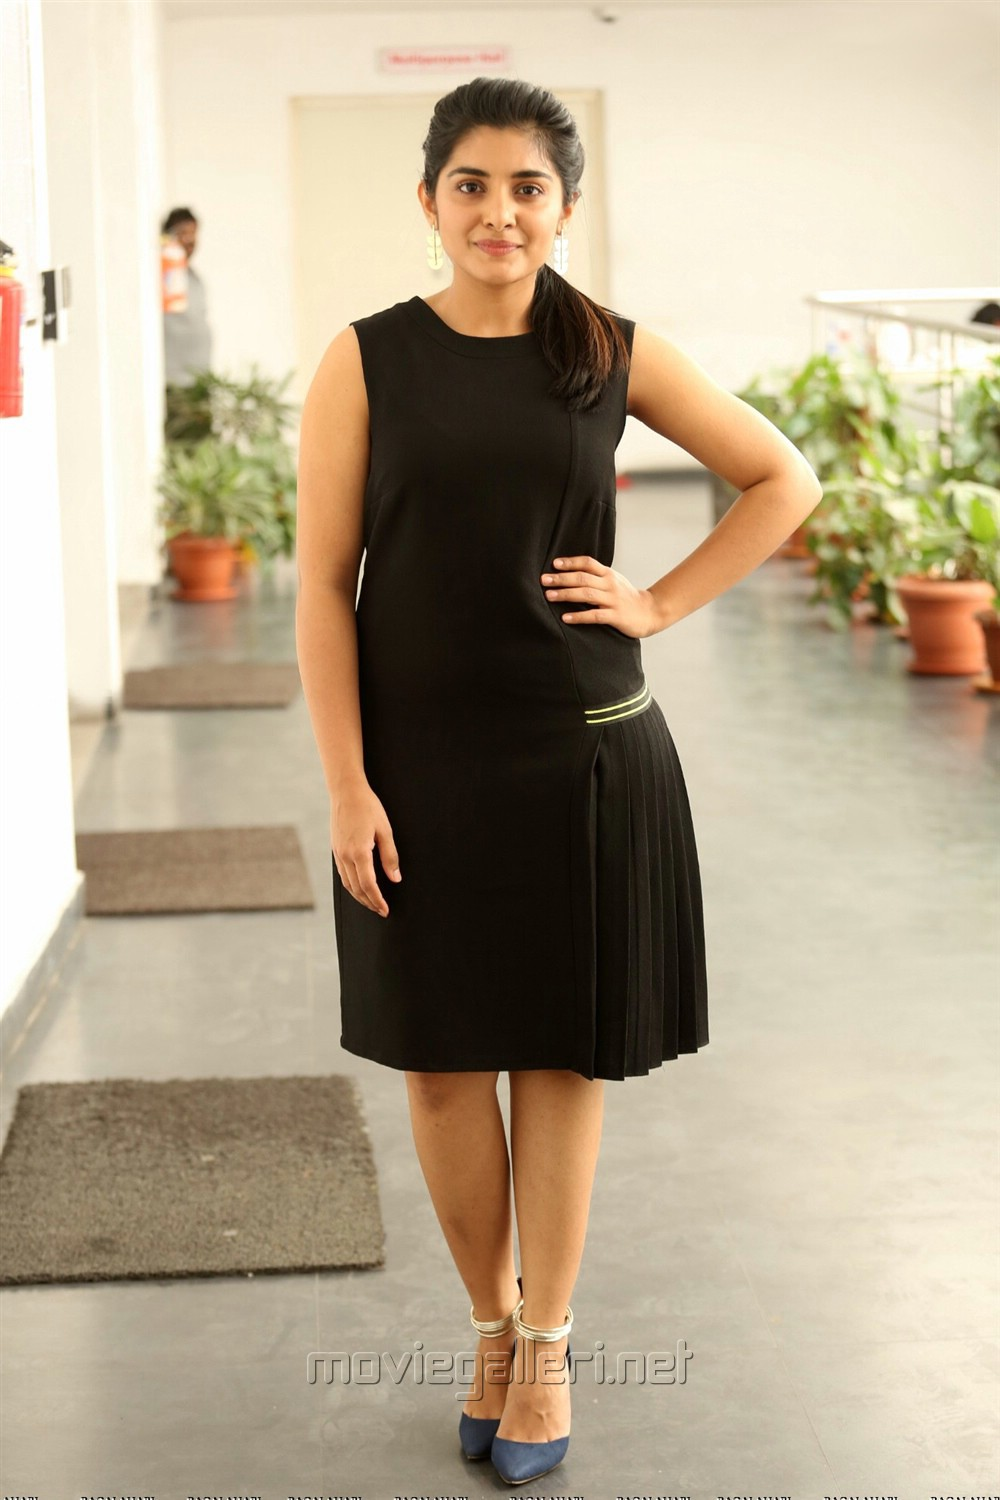 Actress Nivetha Thomas New Stills in Black Skirt